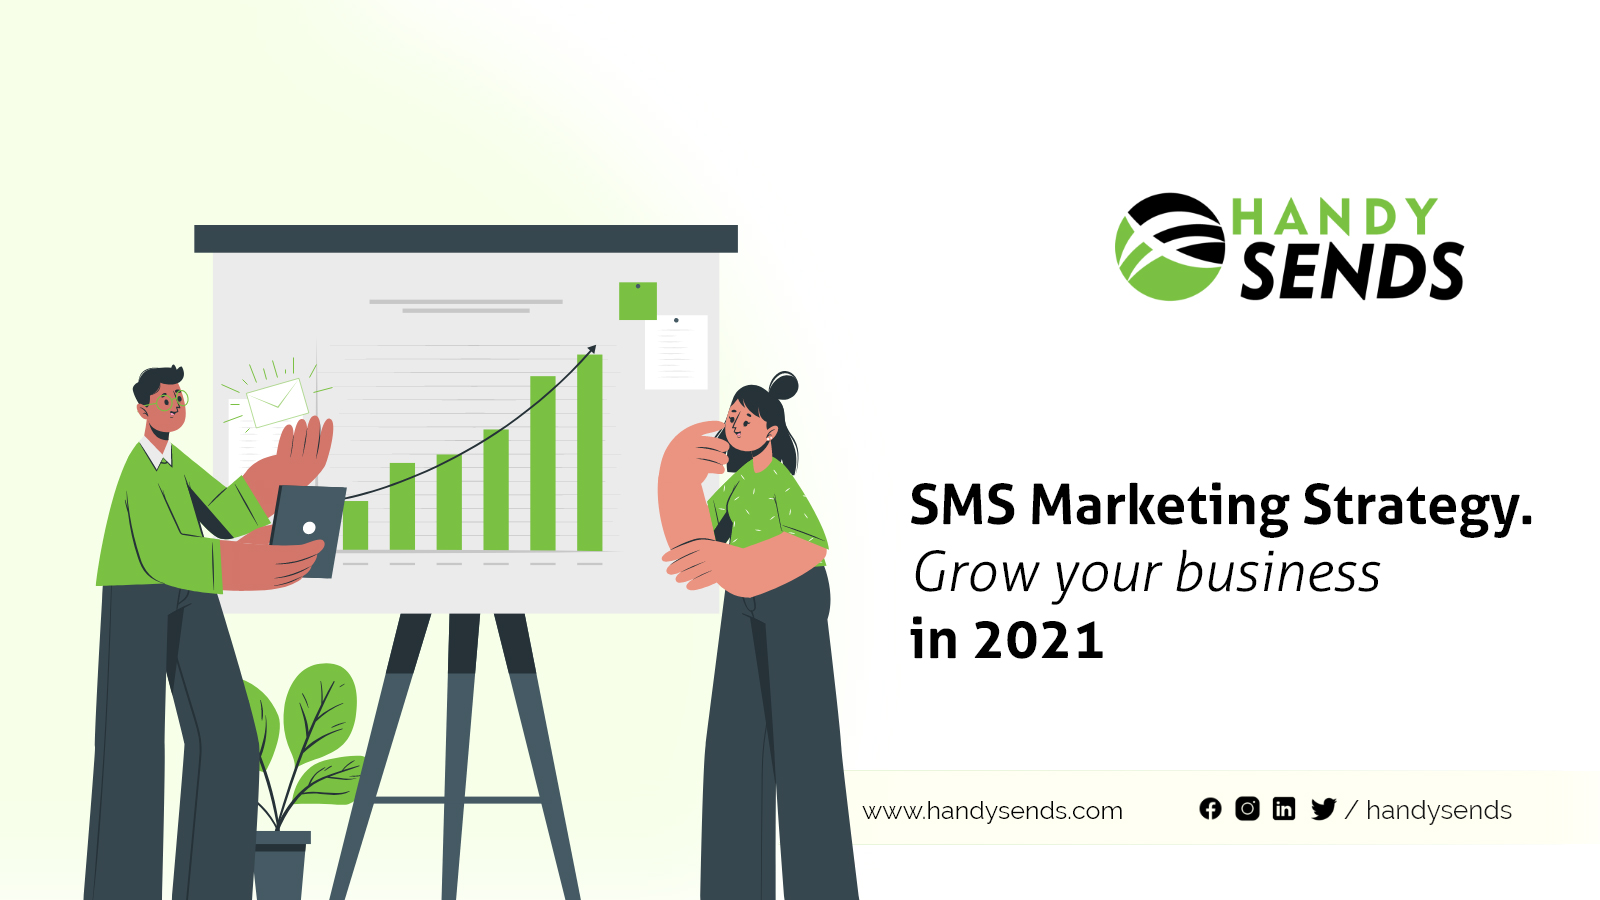 SMS Marketing Strategy: Grow your business in 2021